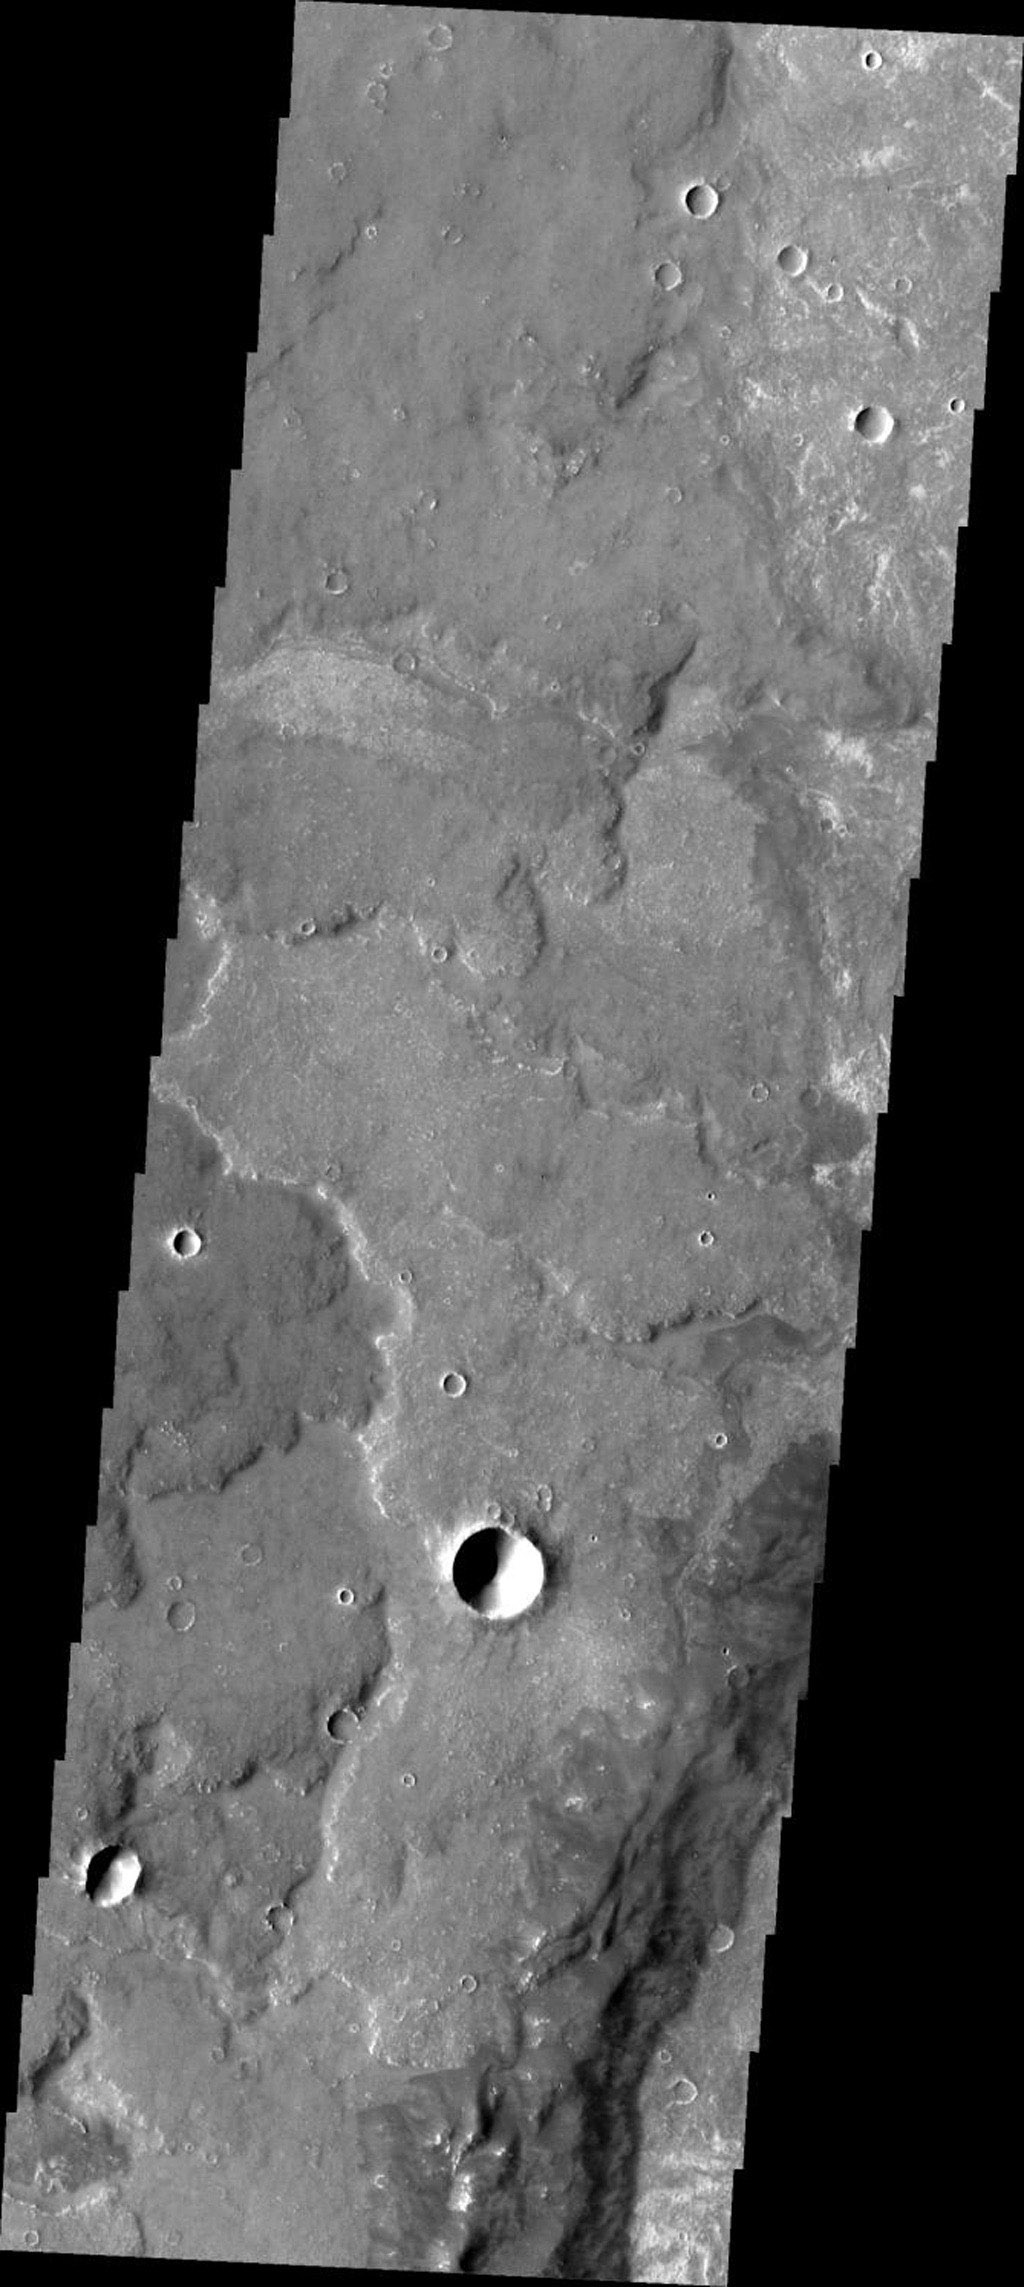 This image from NASA's Mars Odyssey shows some of the extensive lava flows that make up Syria Planum on Mars.